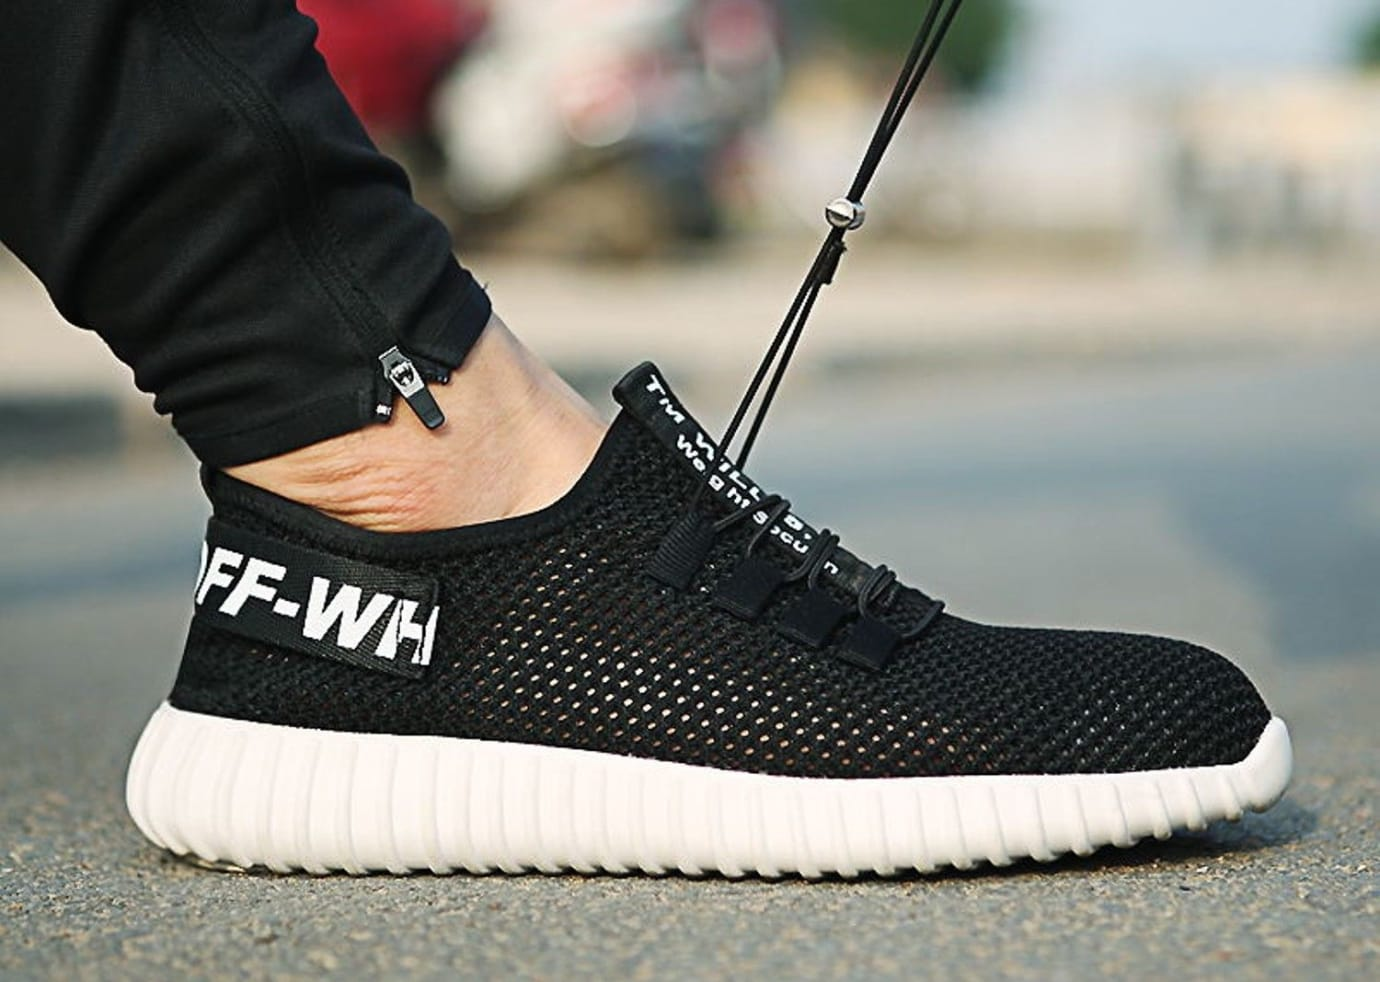 off white yeezy on feet These Fake Off-White x Yeezys Are 'Indestructible' | Sole Collector